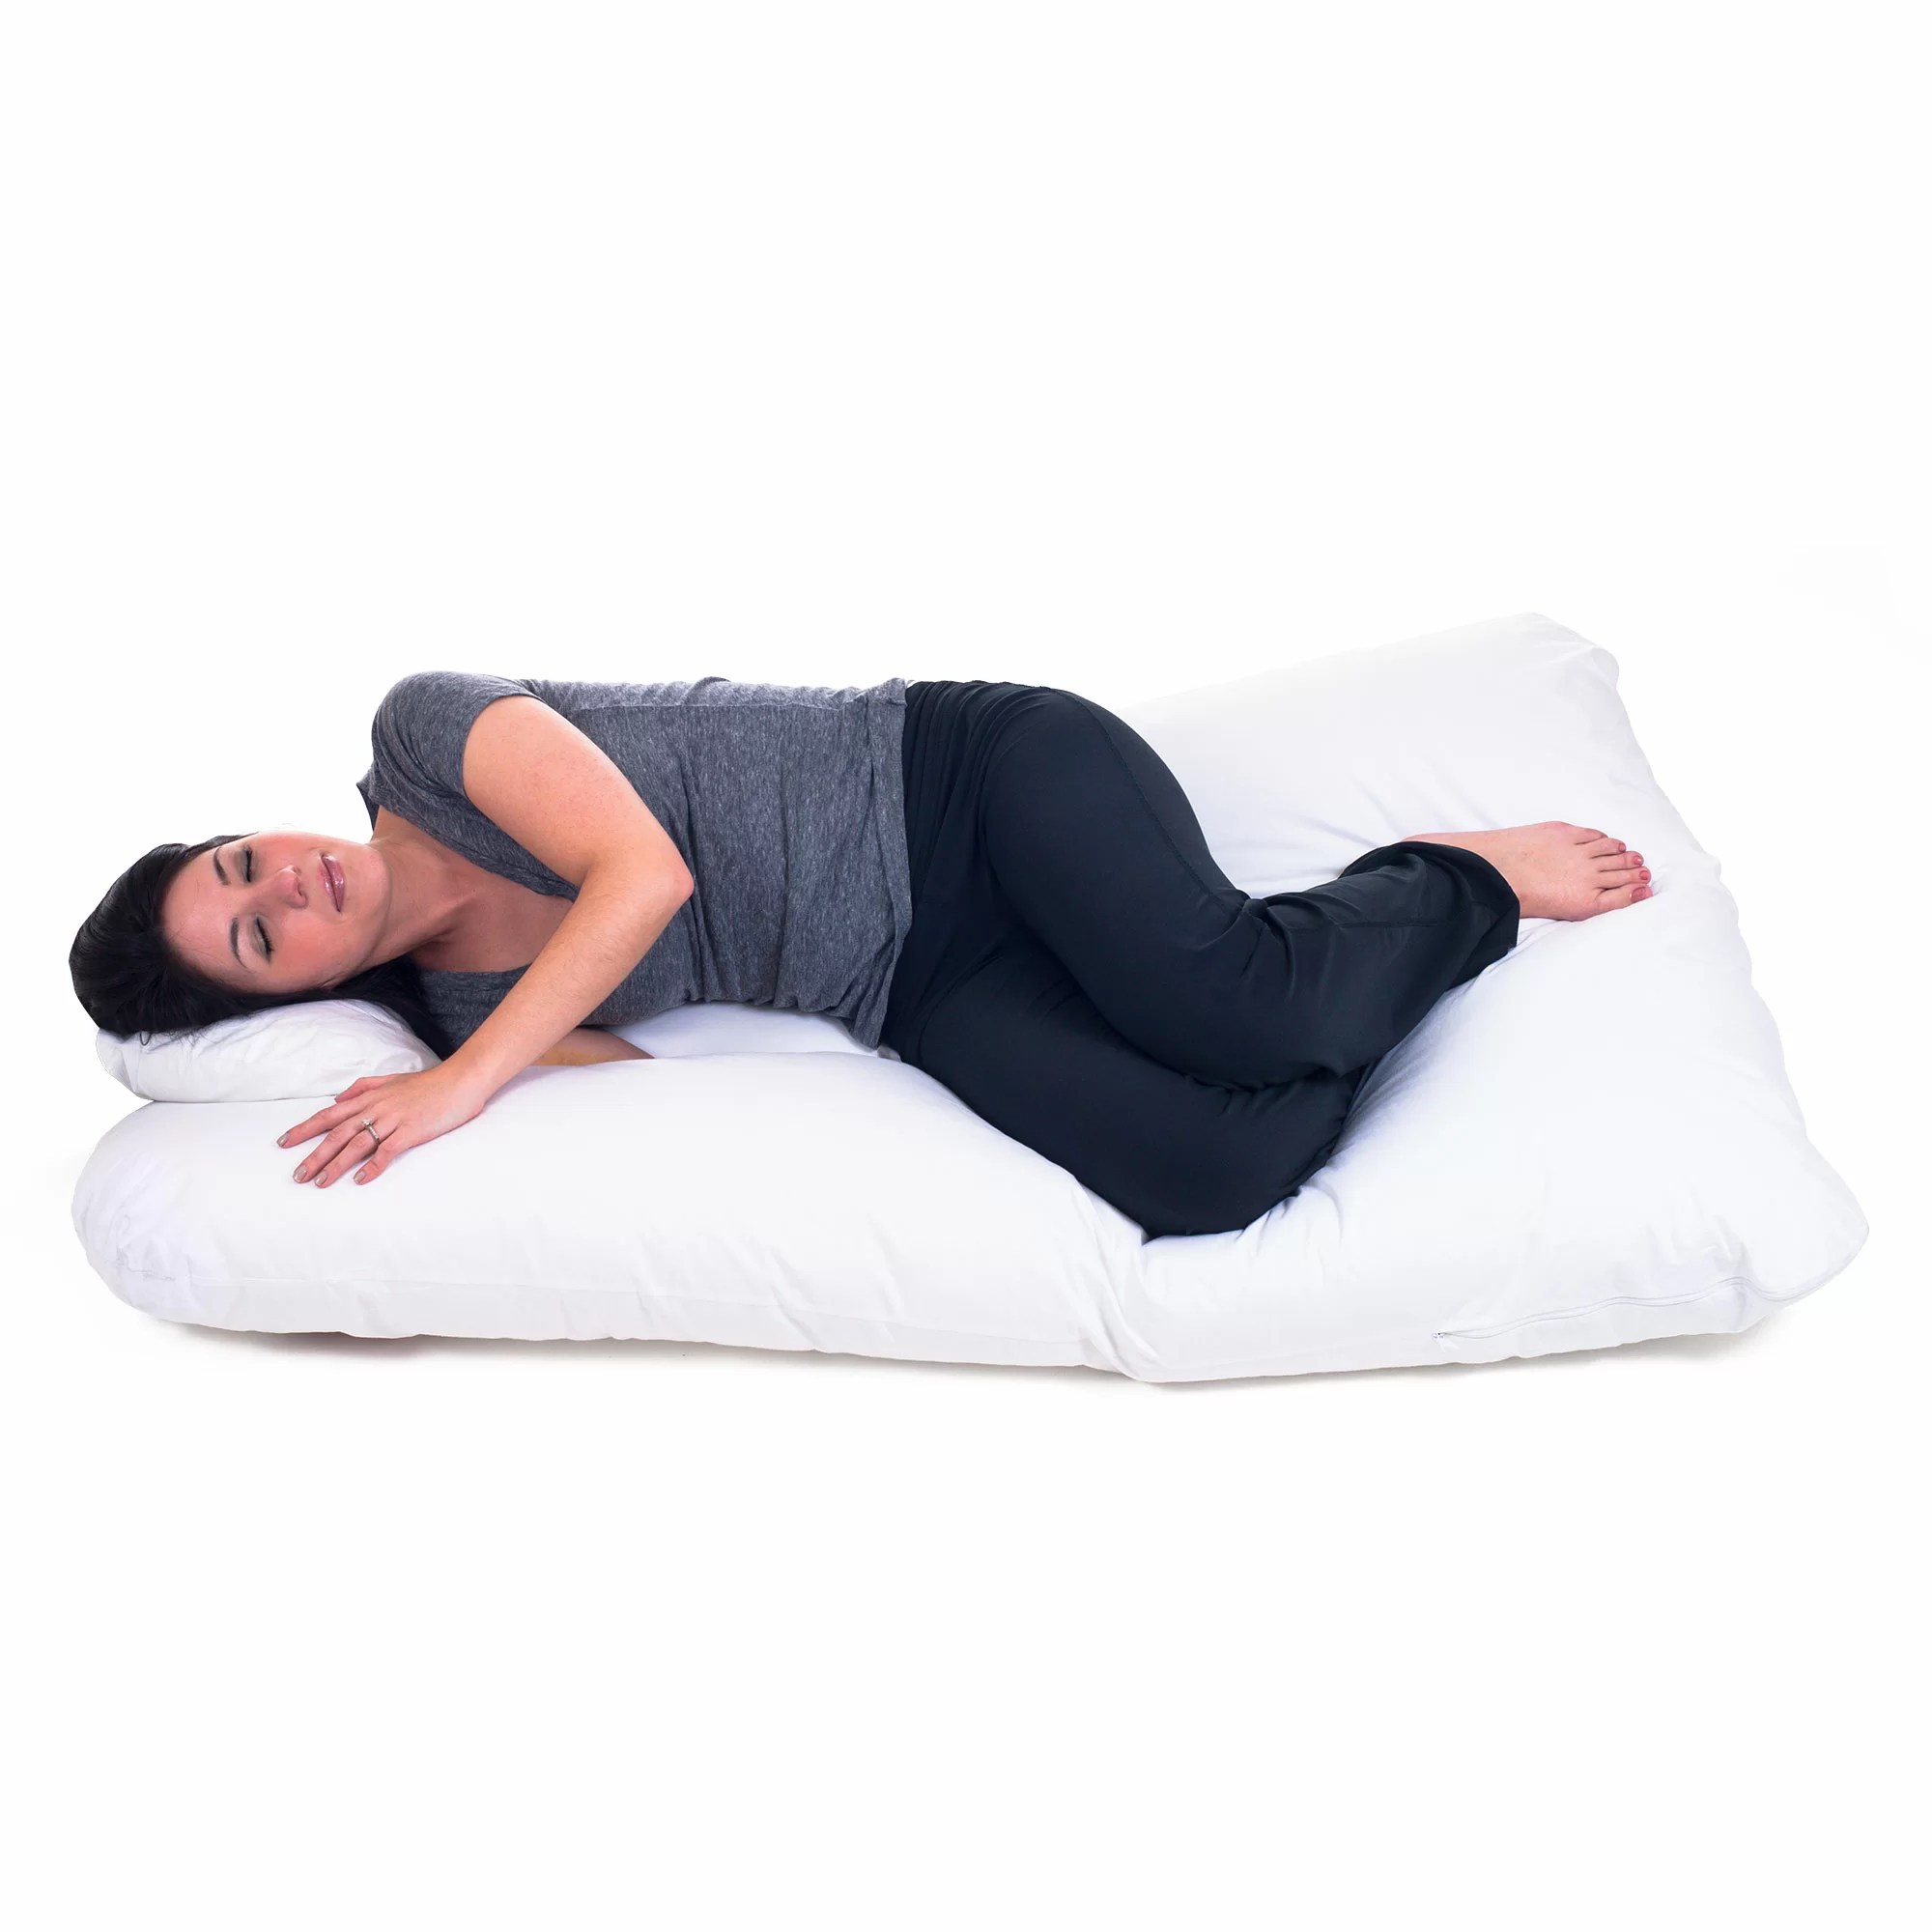 Pregancy Body Pillow. Earthlite Pregnancy Cushion 2017